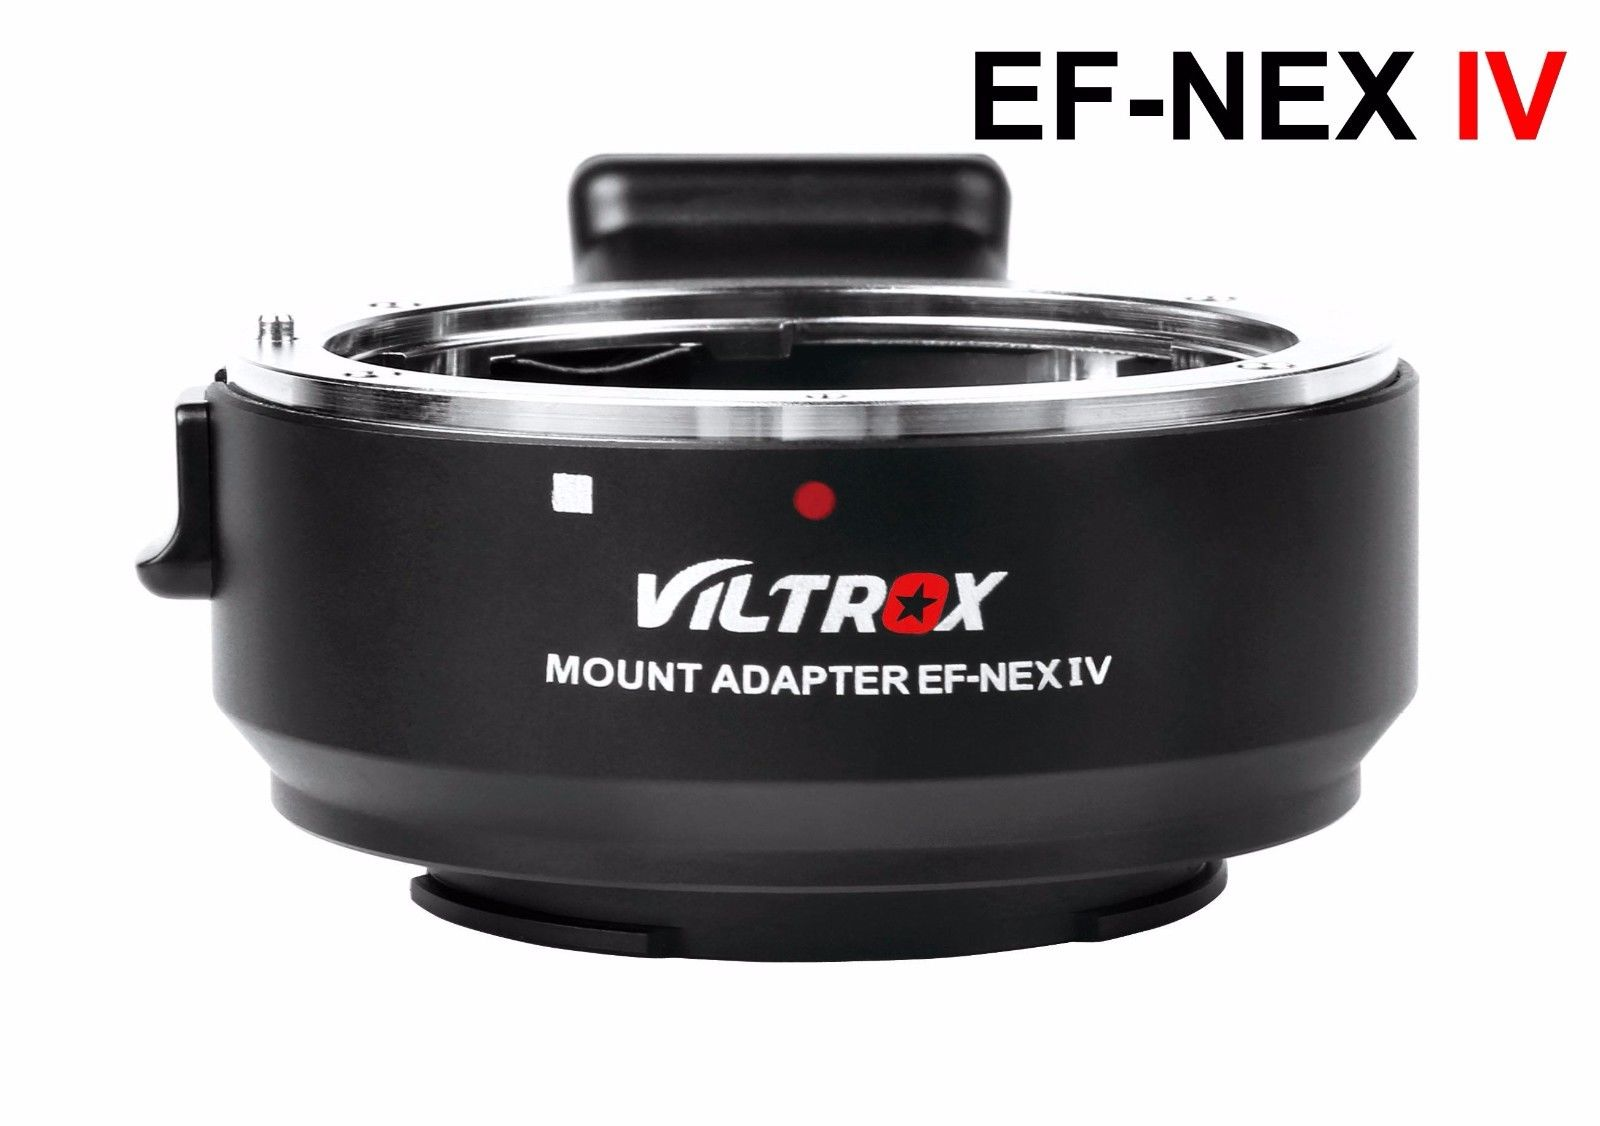 Viltrox EF-NEX IV Auto Focus Adapter For Canon EF EF-S to Lens Adapter For SONY E A9/7/7R/6300/6500